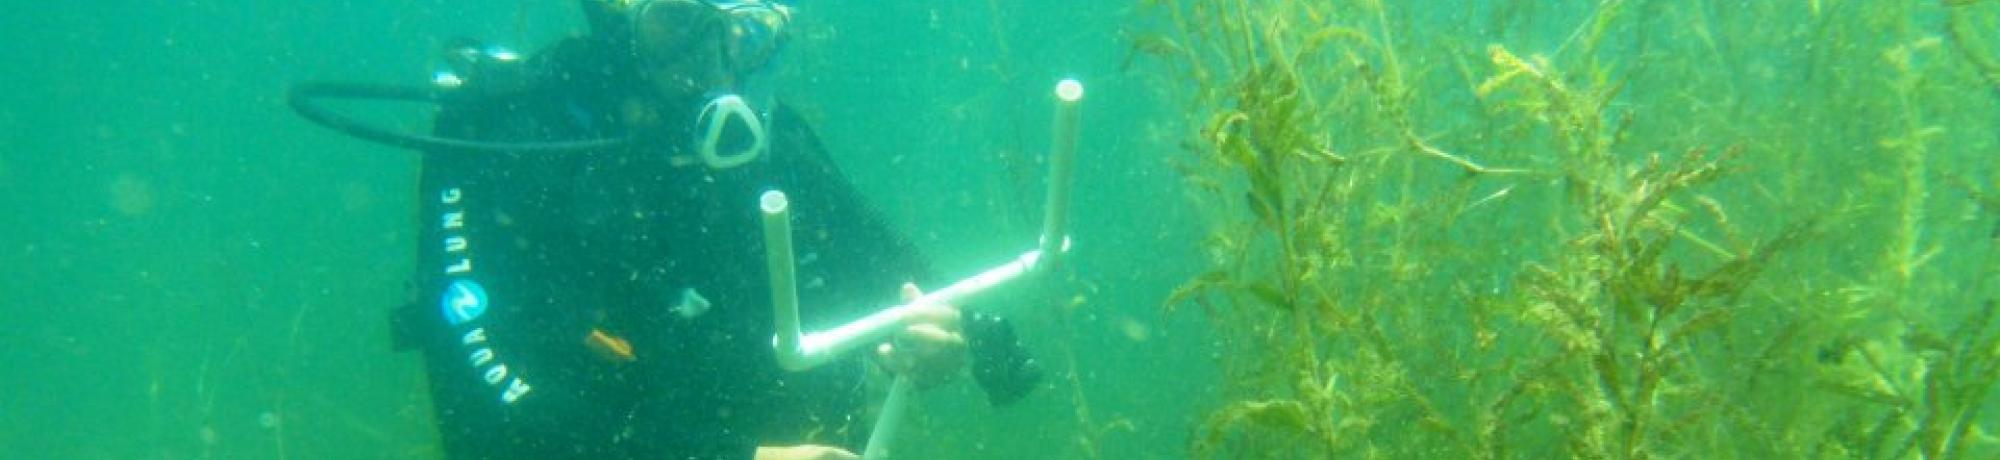 Research diver measuring curlyleaf pondweed